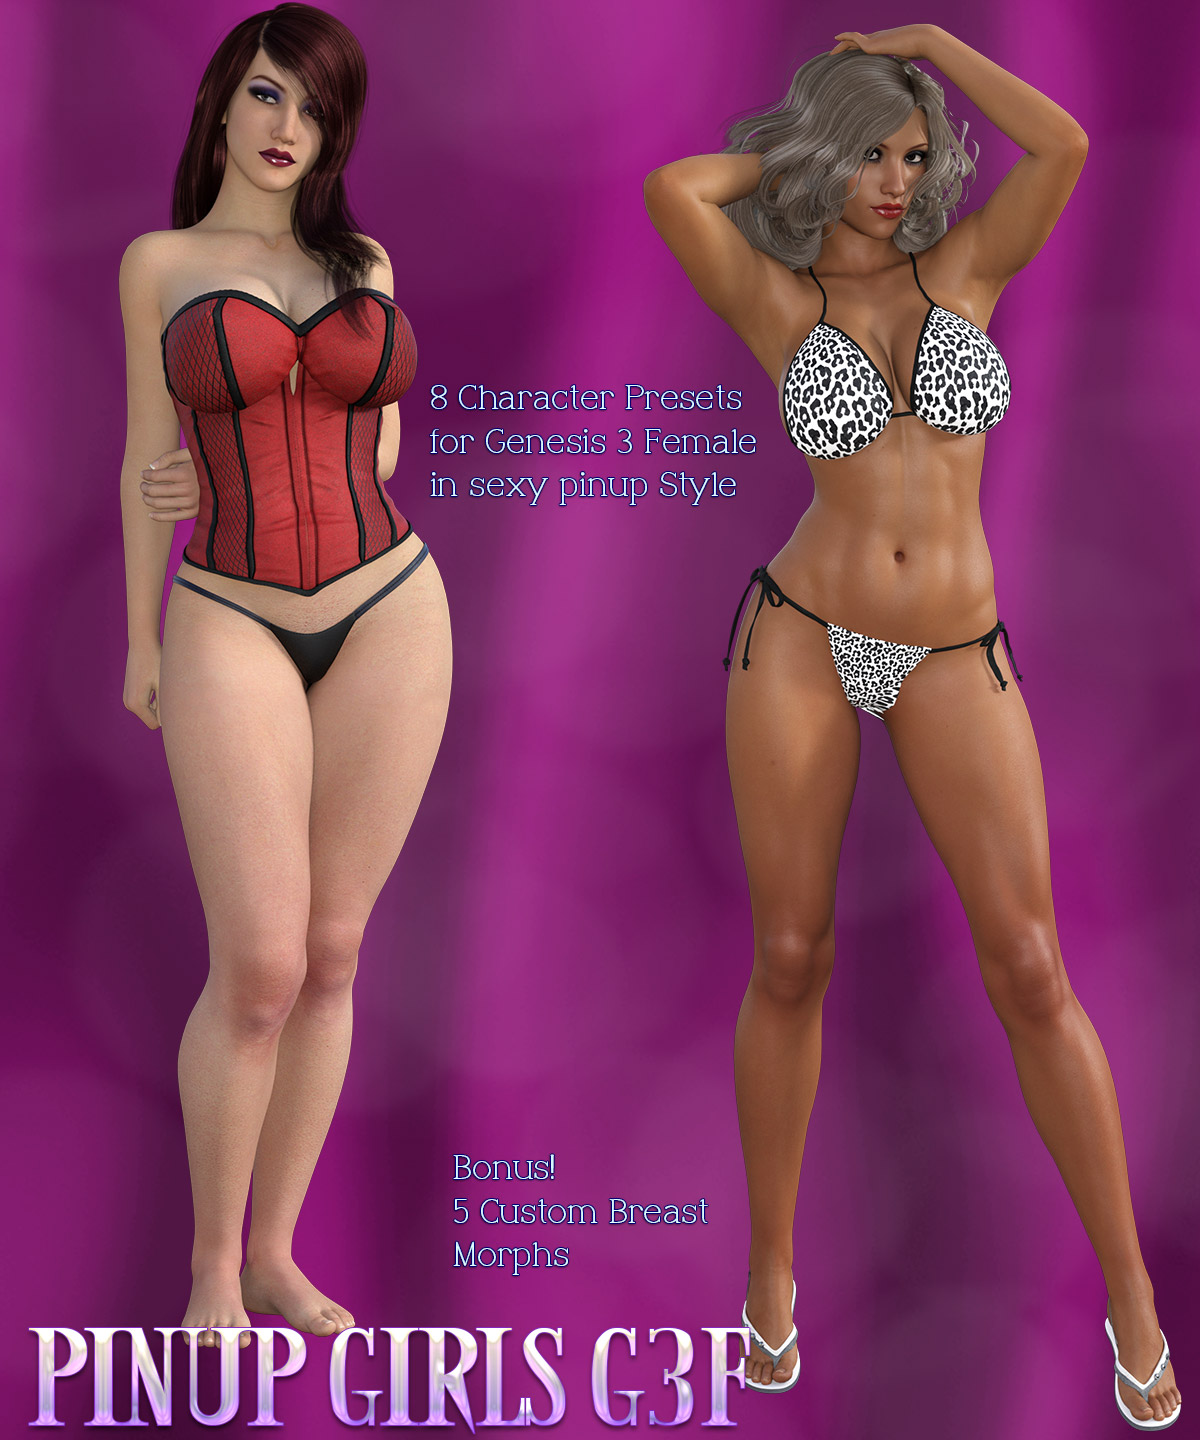 Pinup Girls G3F